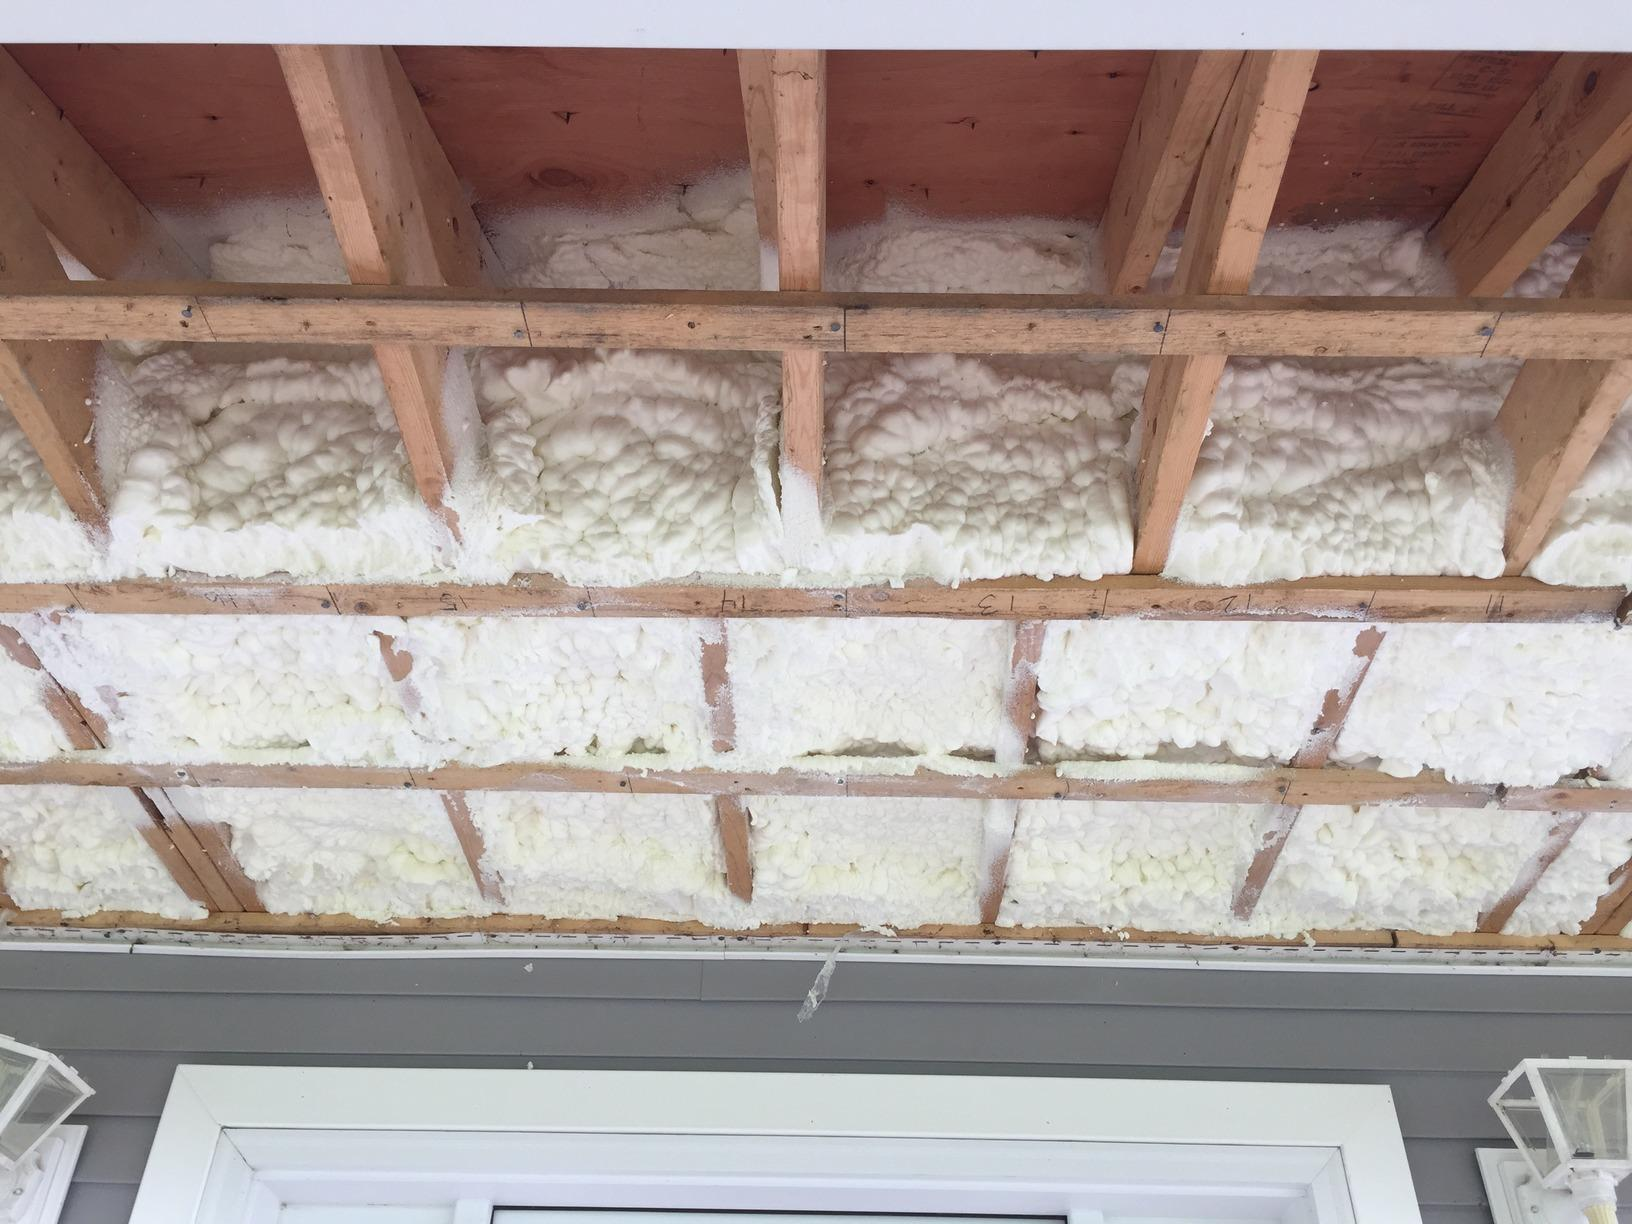 Insulating Cantilevers On A New Home - Orangeburg, NY - Before Photo